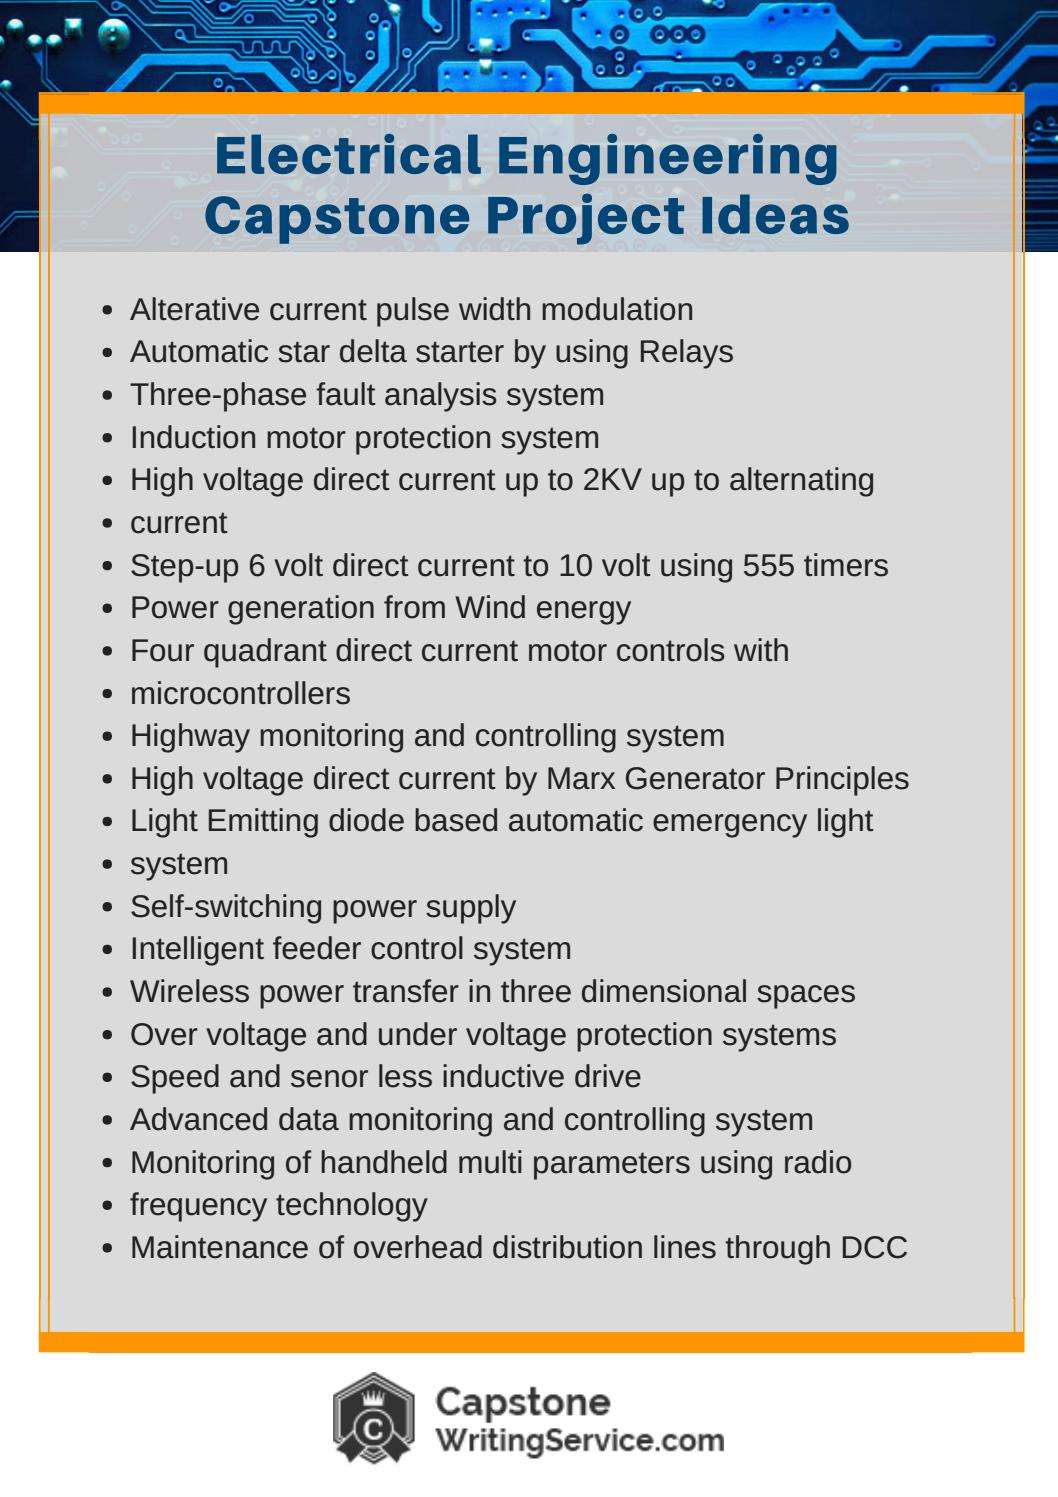 Electrical Engineering Capstone Project Ideas By Capstone